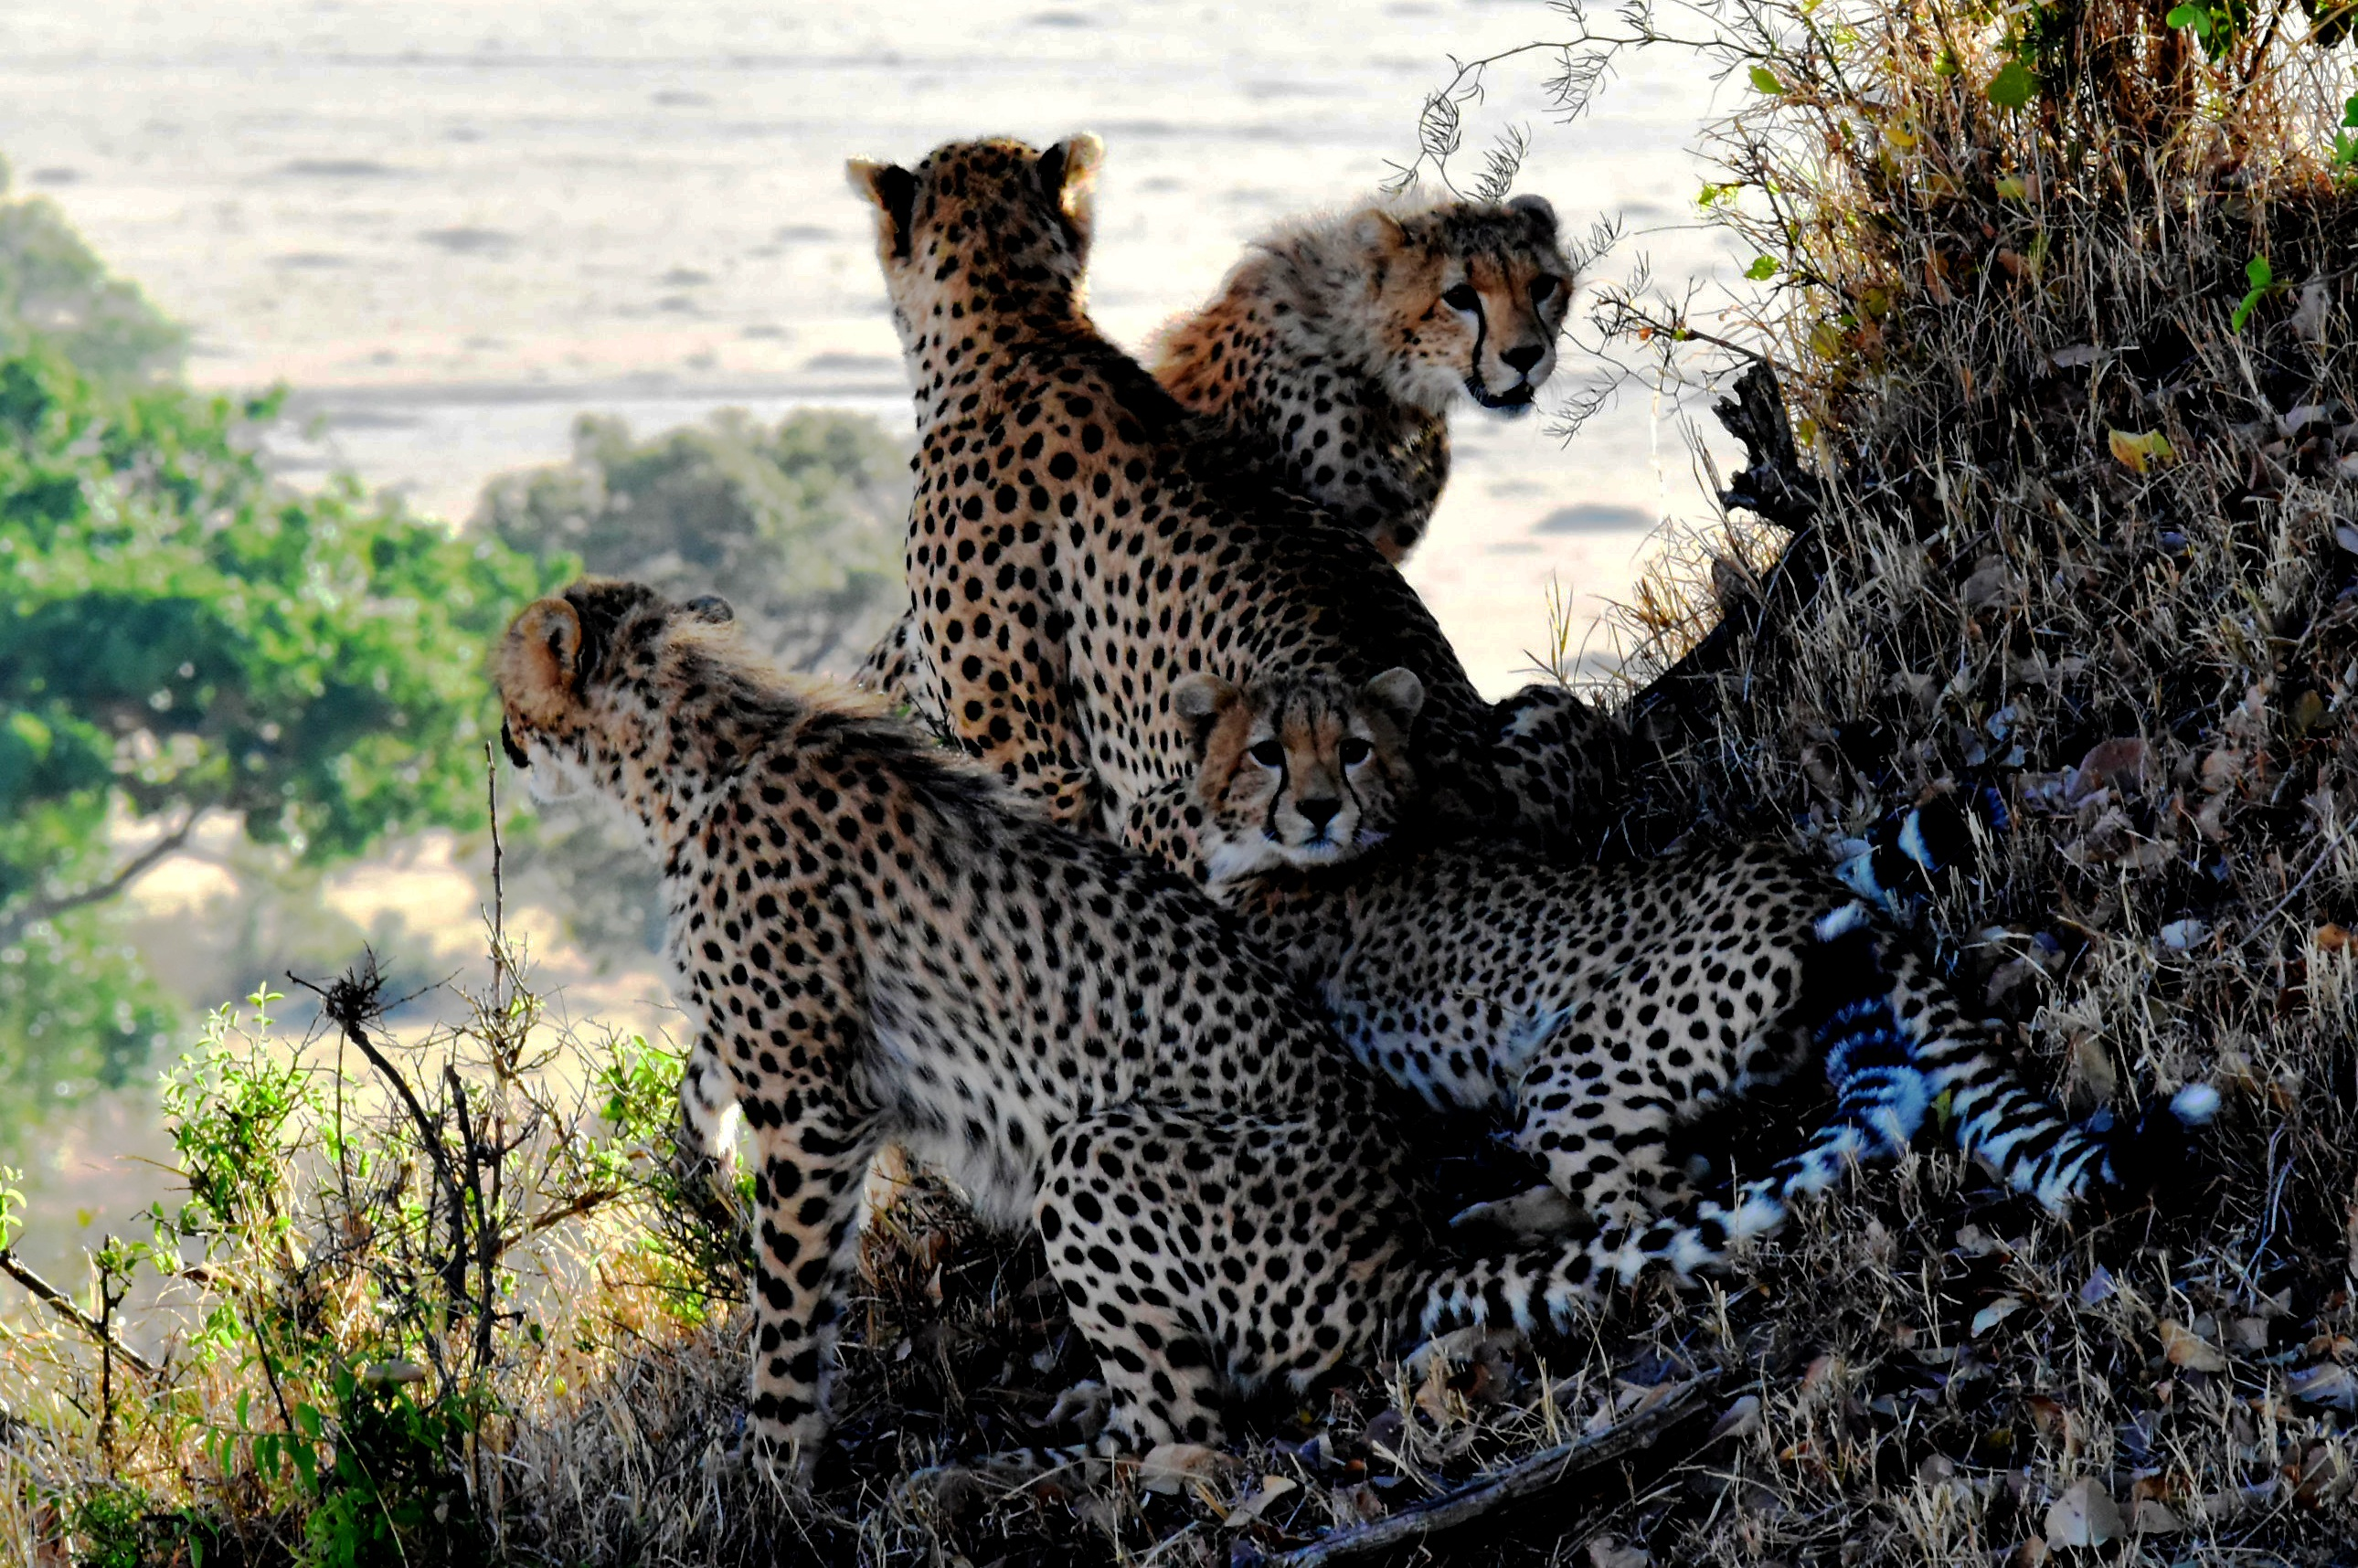 leopards-family-animals-tanzania-160459